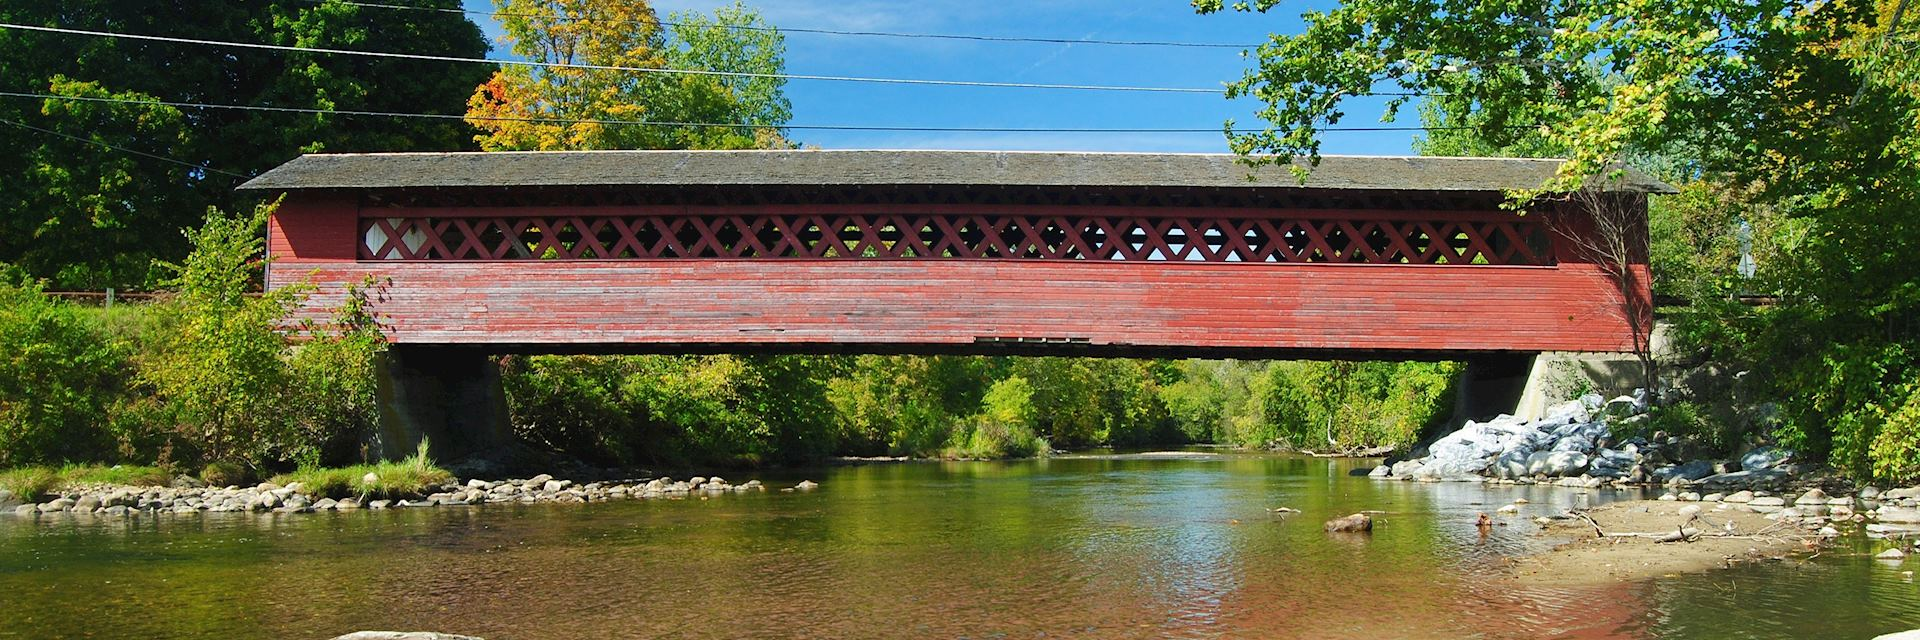 Covered bridge, Bennington